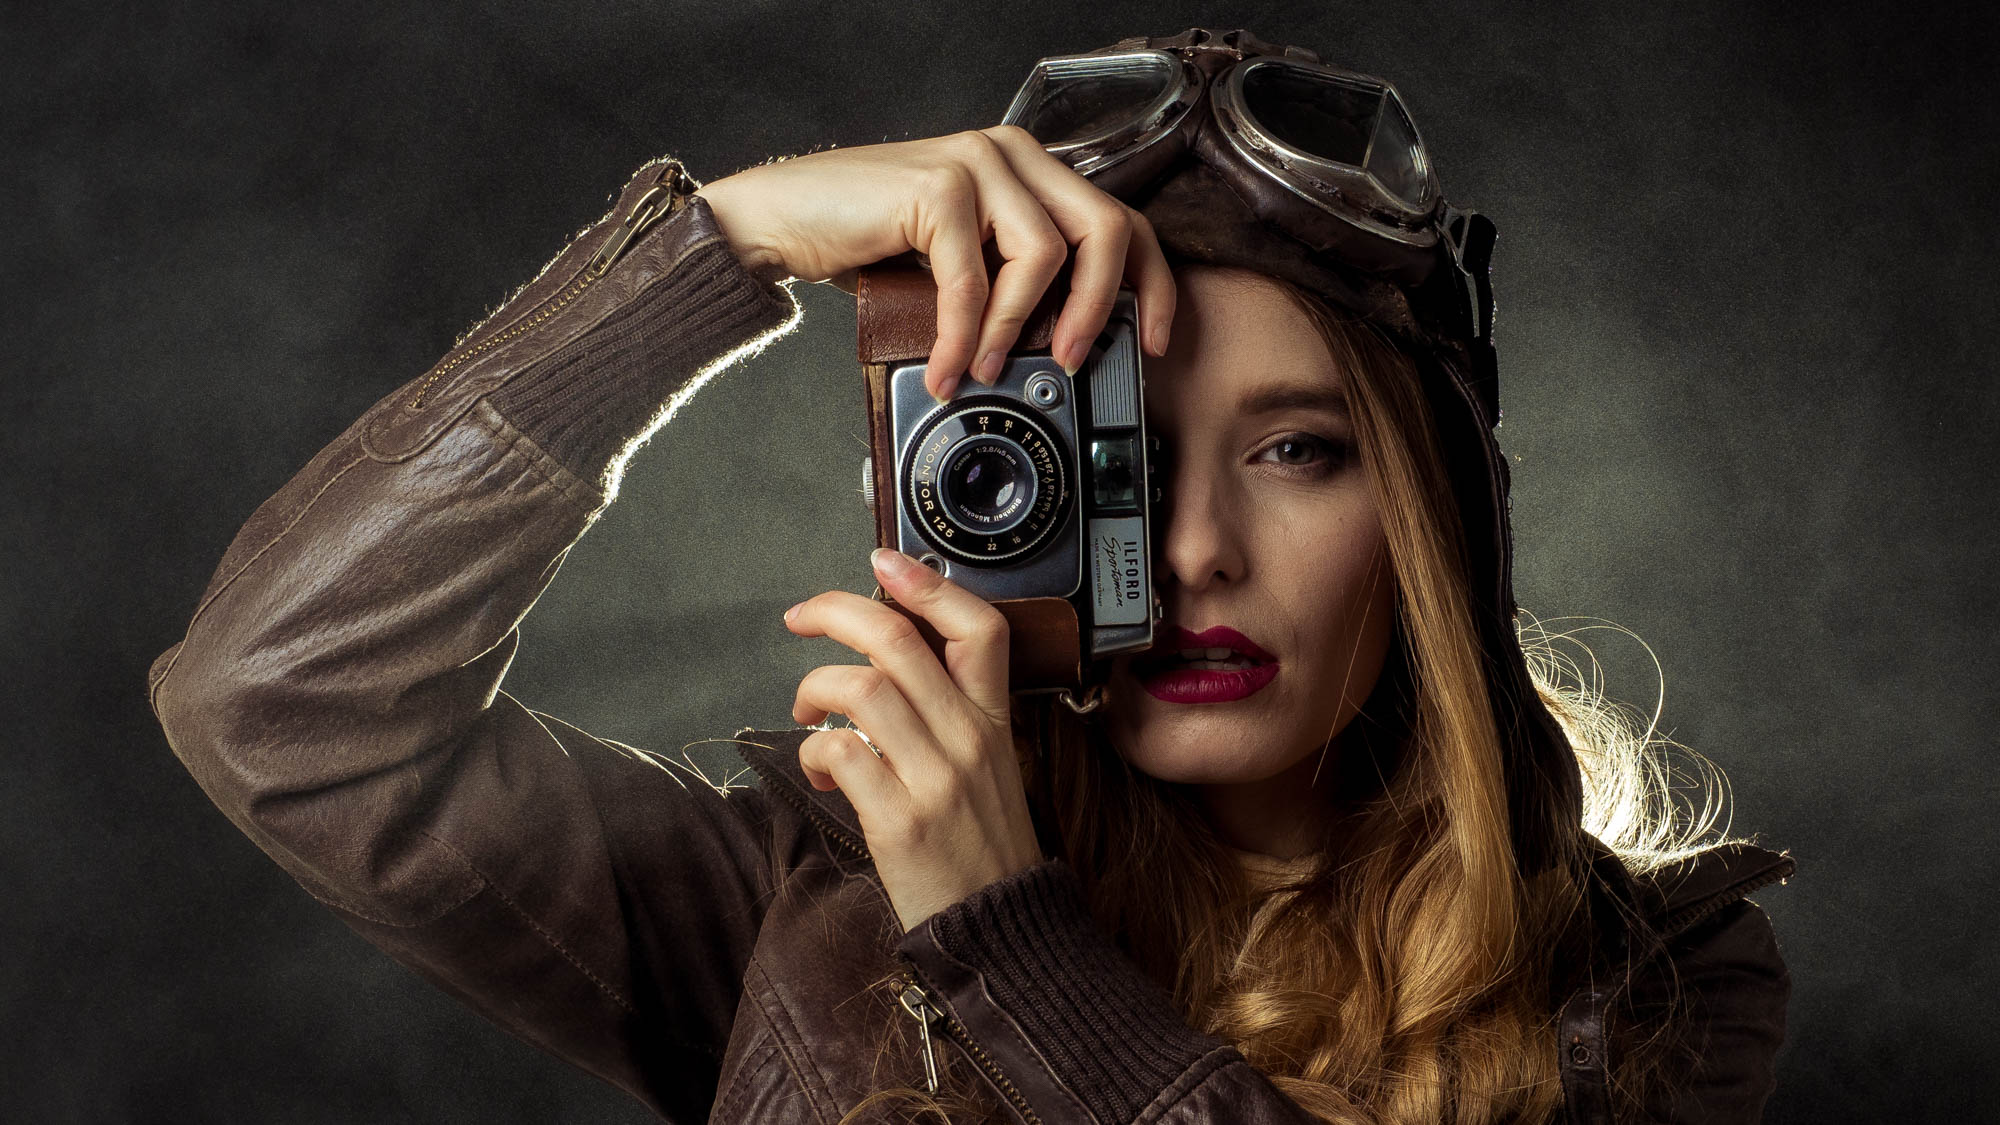 The School of Photography - Courses, Tutorials & Books